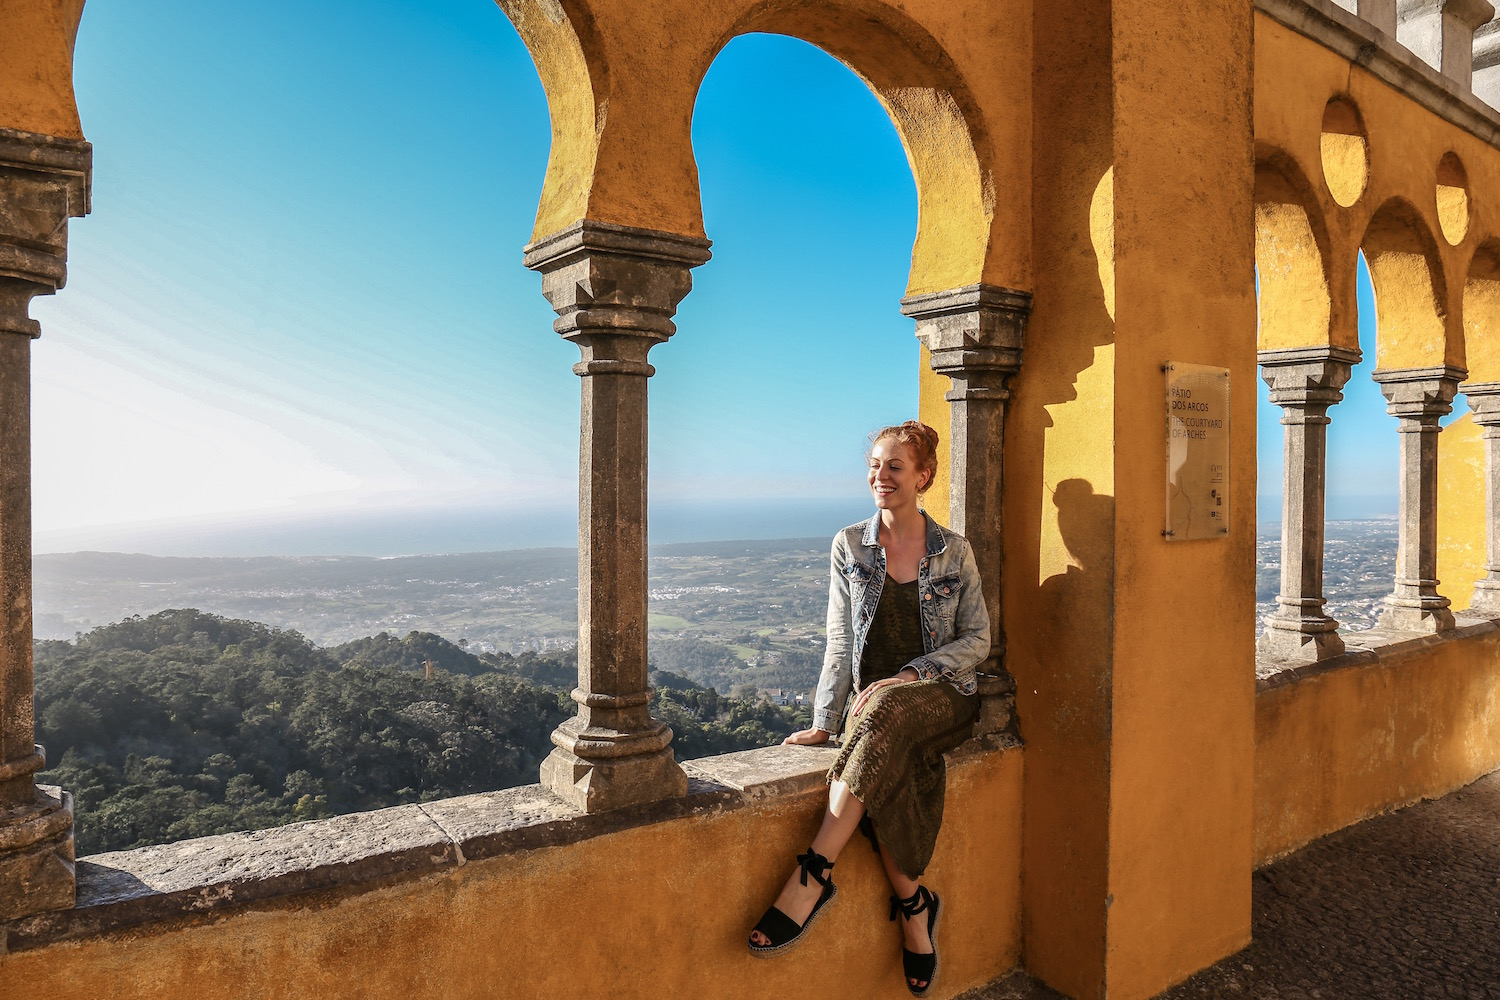 redhead-round-the-world-blog-blogger-portugal-europe-sintra-pena-palace-sun.JPG